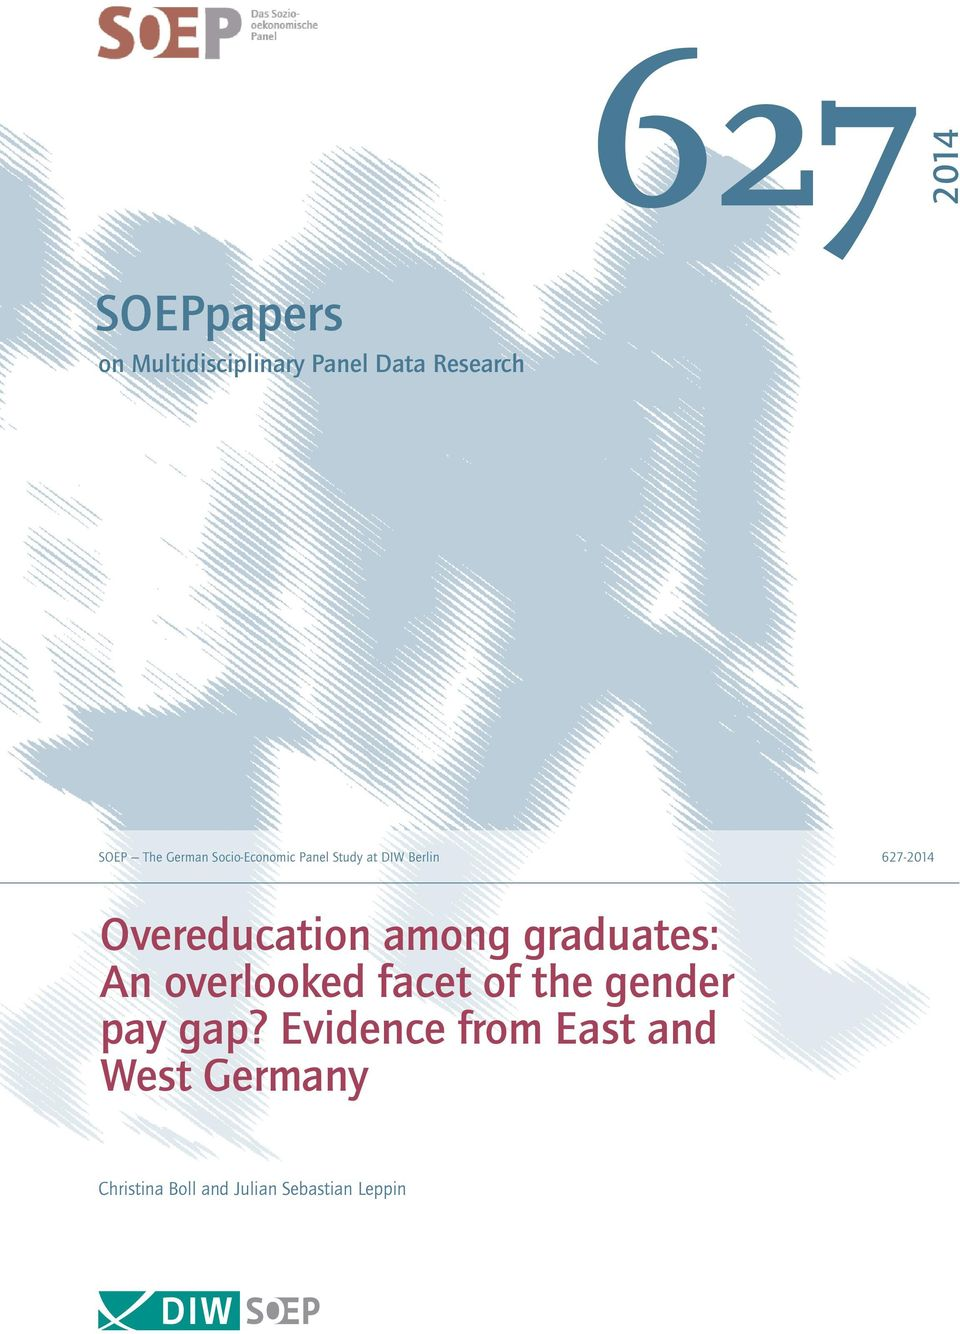 Overeducation among graduates: An overlooked facet of the gender pay